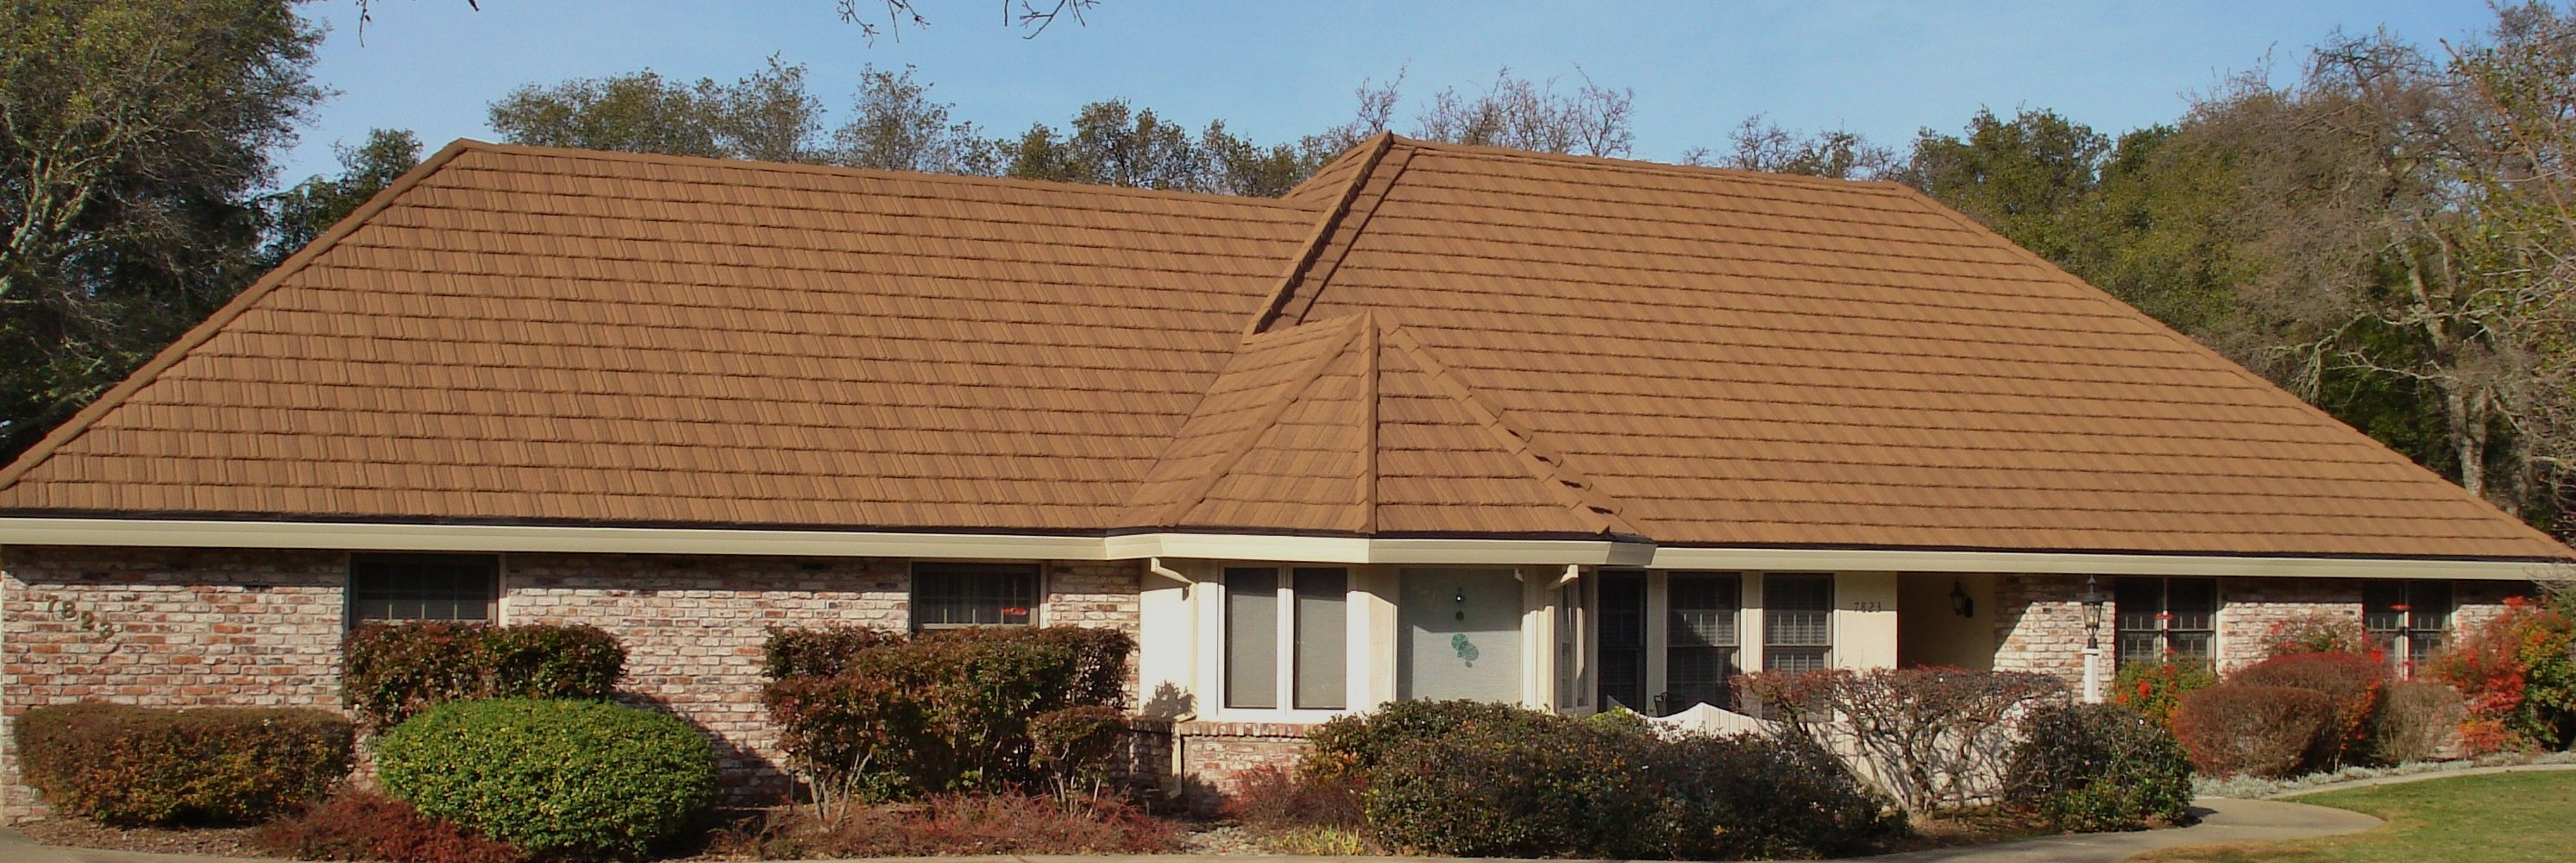 7 Popular Siding Materials To Consider: Things To Focus On When Selecting The Best Roofing